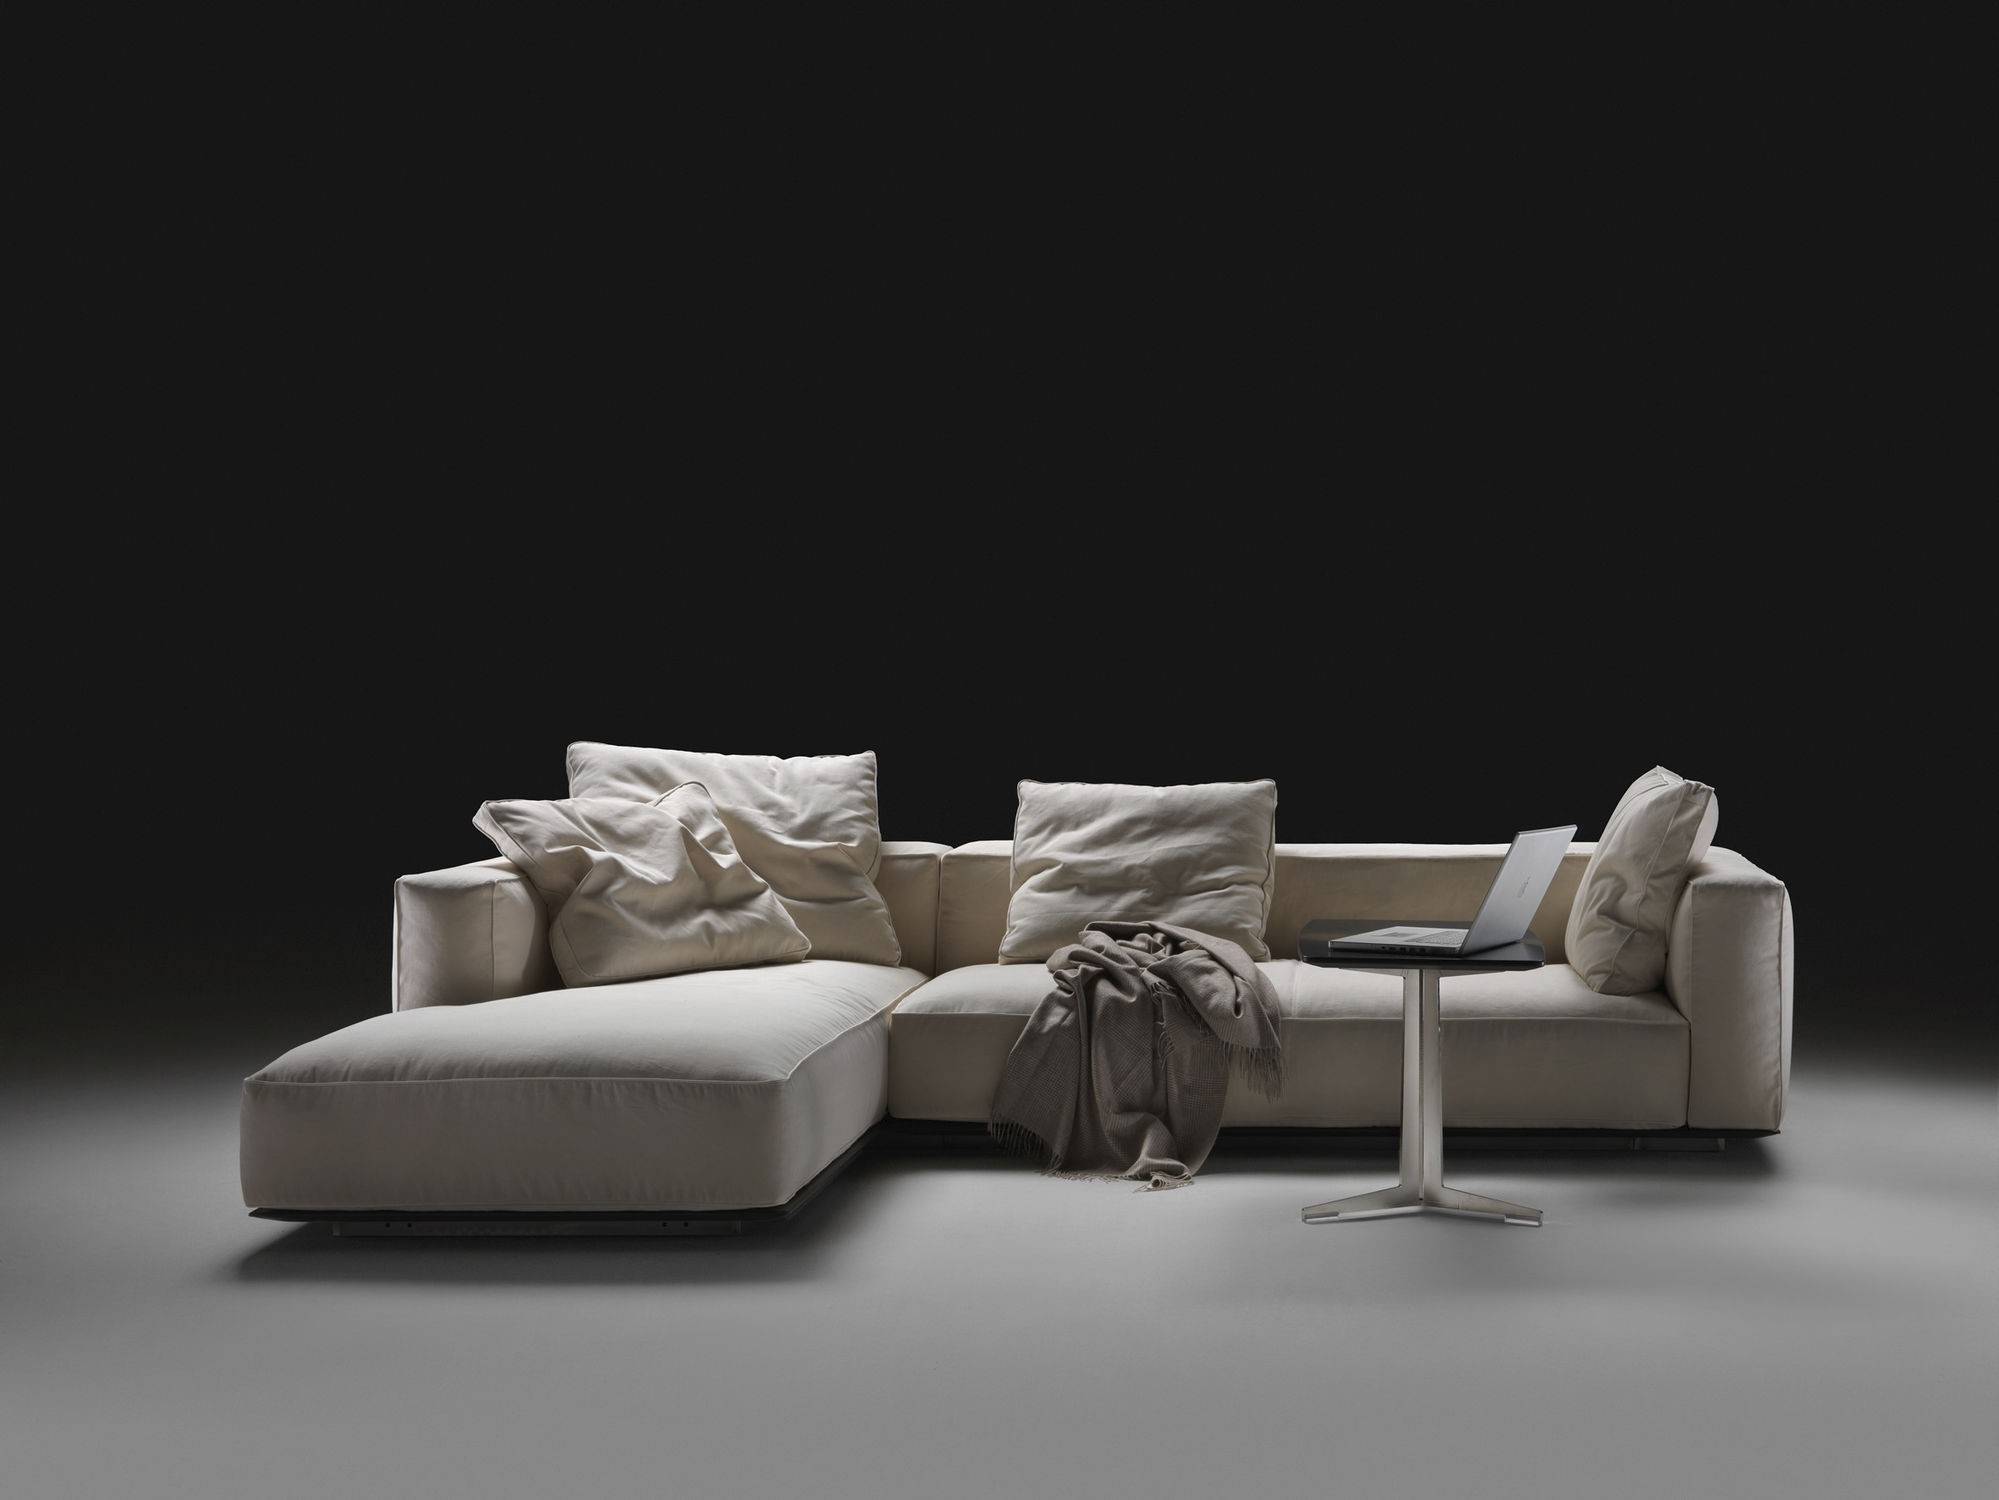 Sofa Helpdesk Flexform Beauty Sofa Deplain